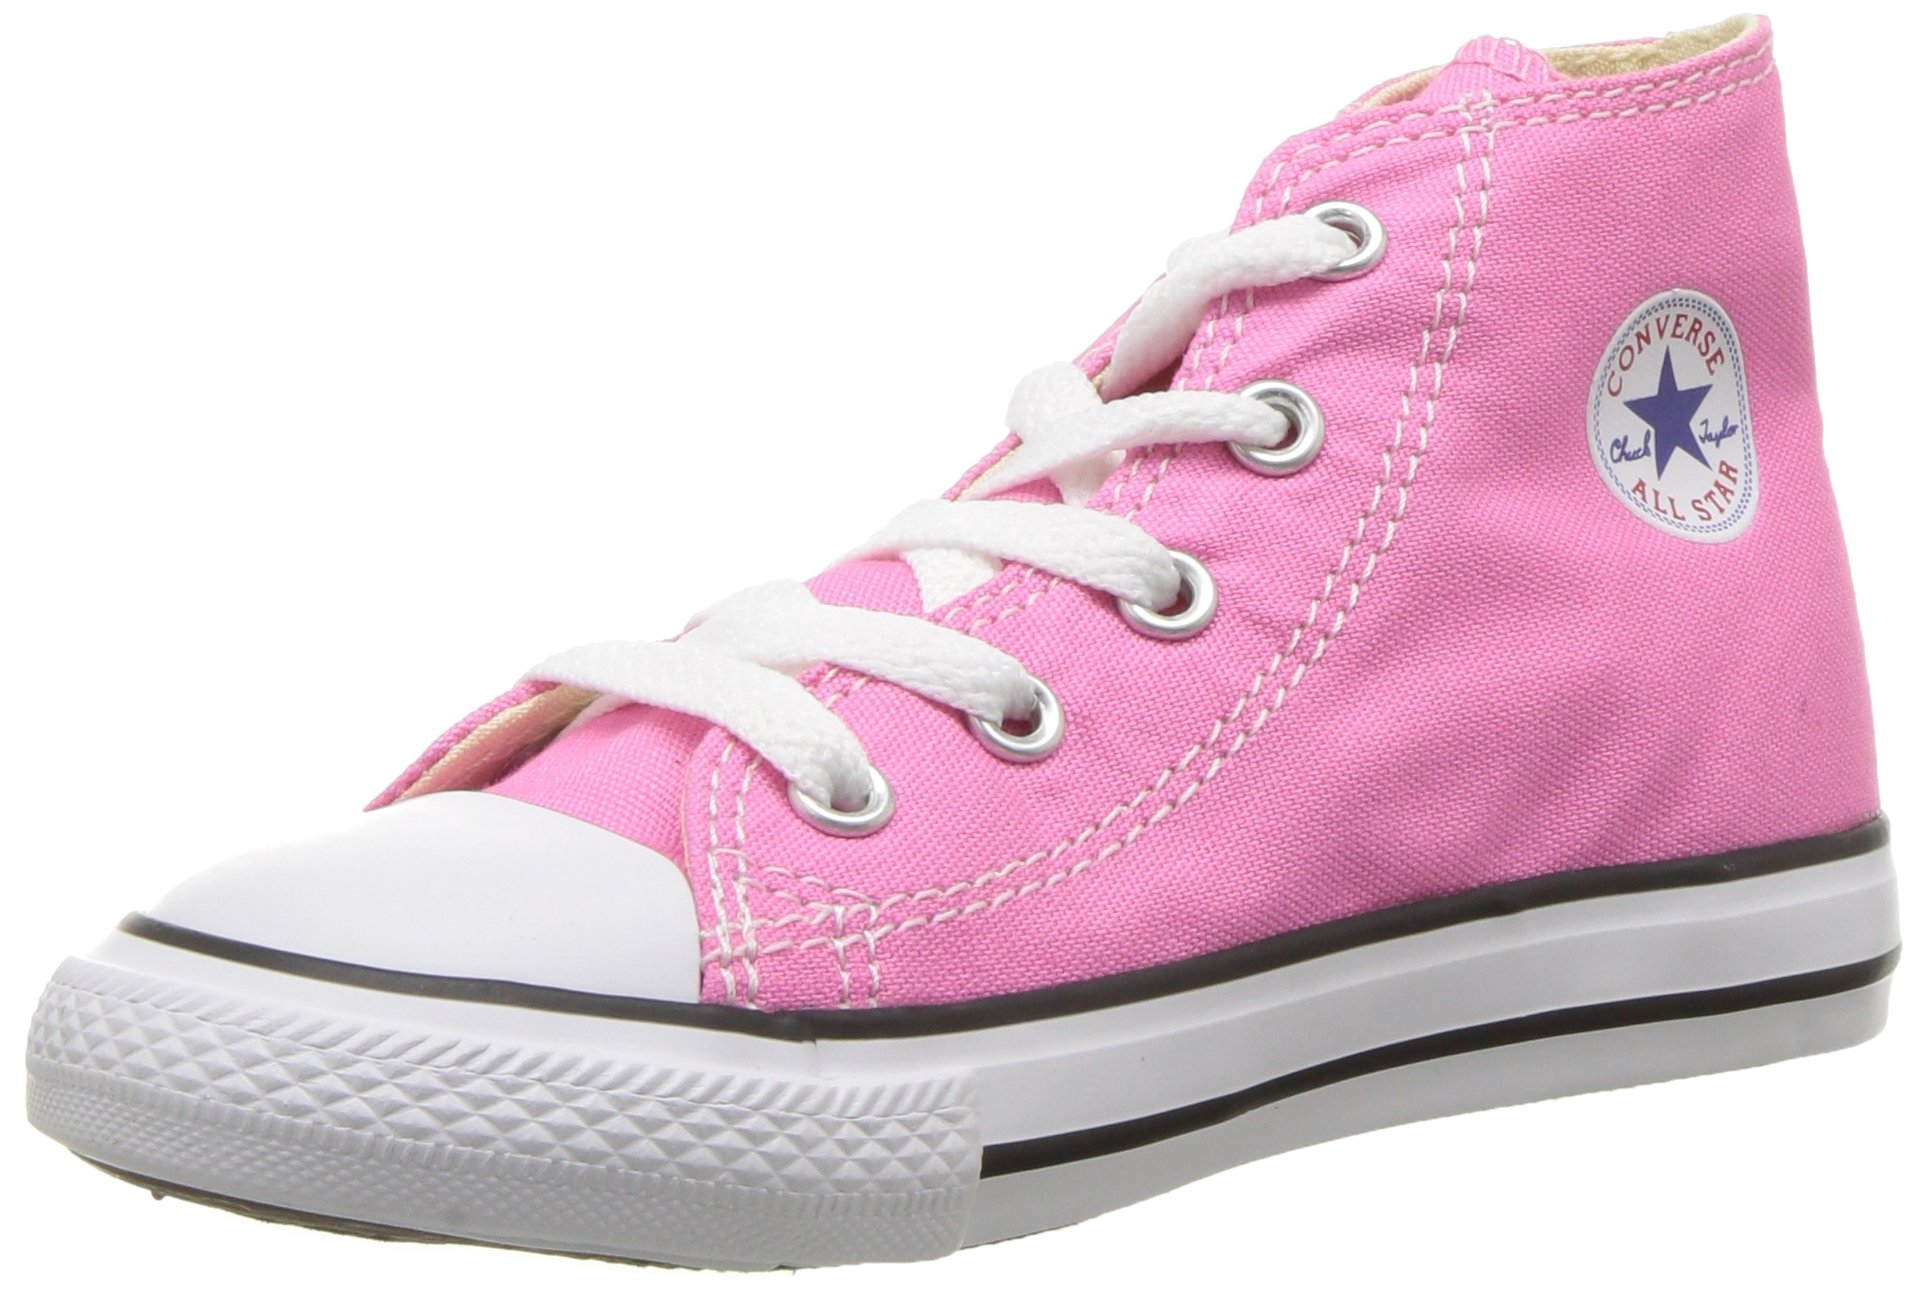 Converse Baby Chuck Taylor All Star Canvas High Top Sneaker, Pink, 3 M US Infant